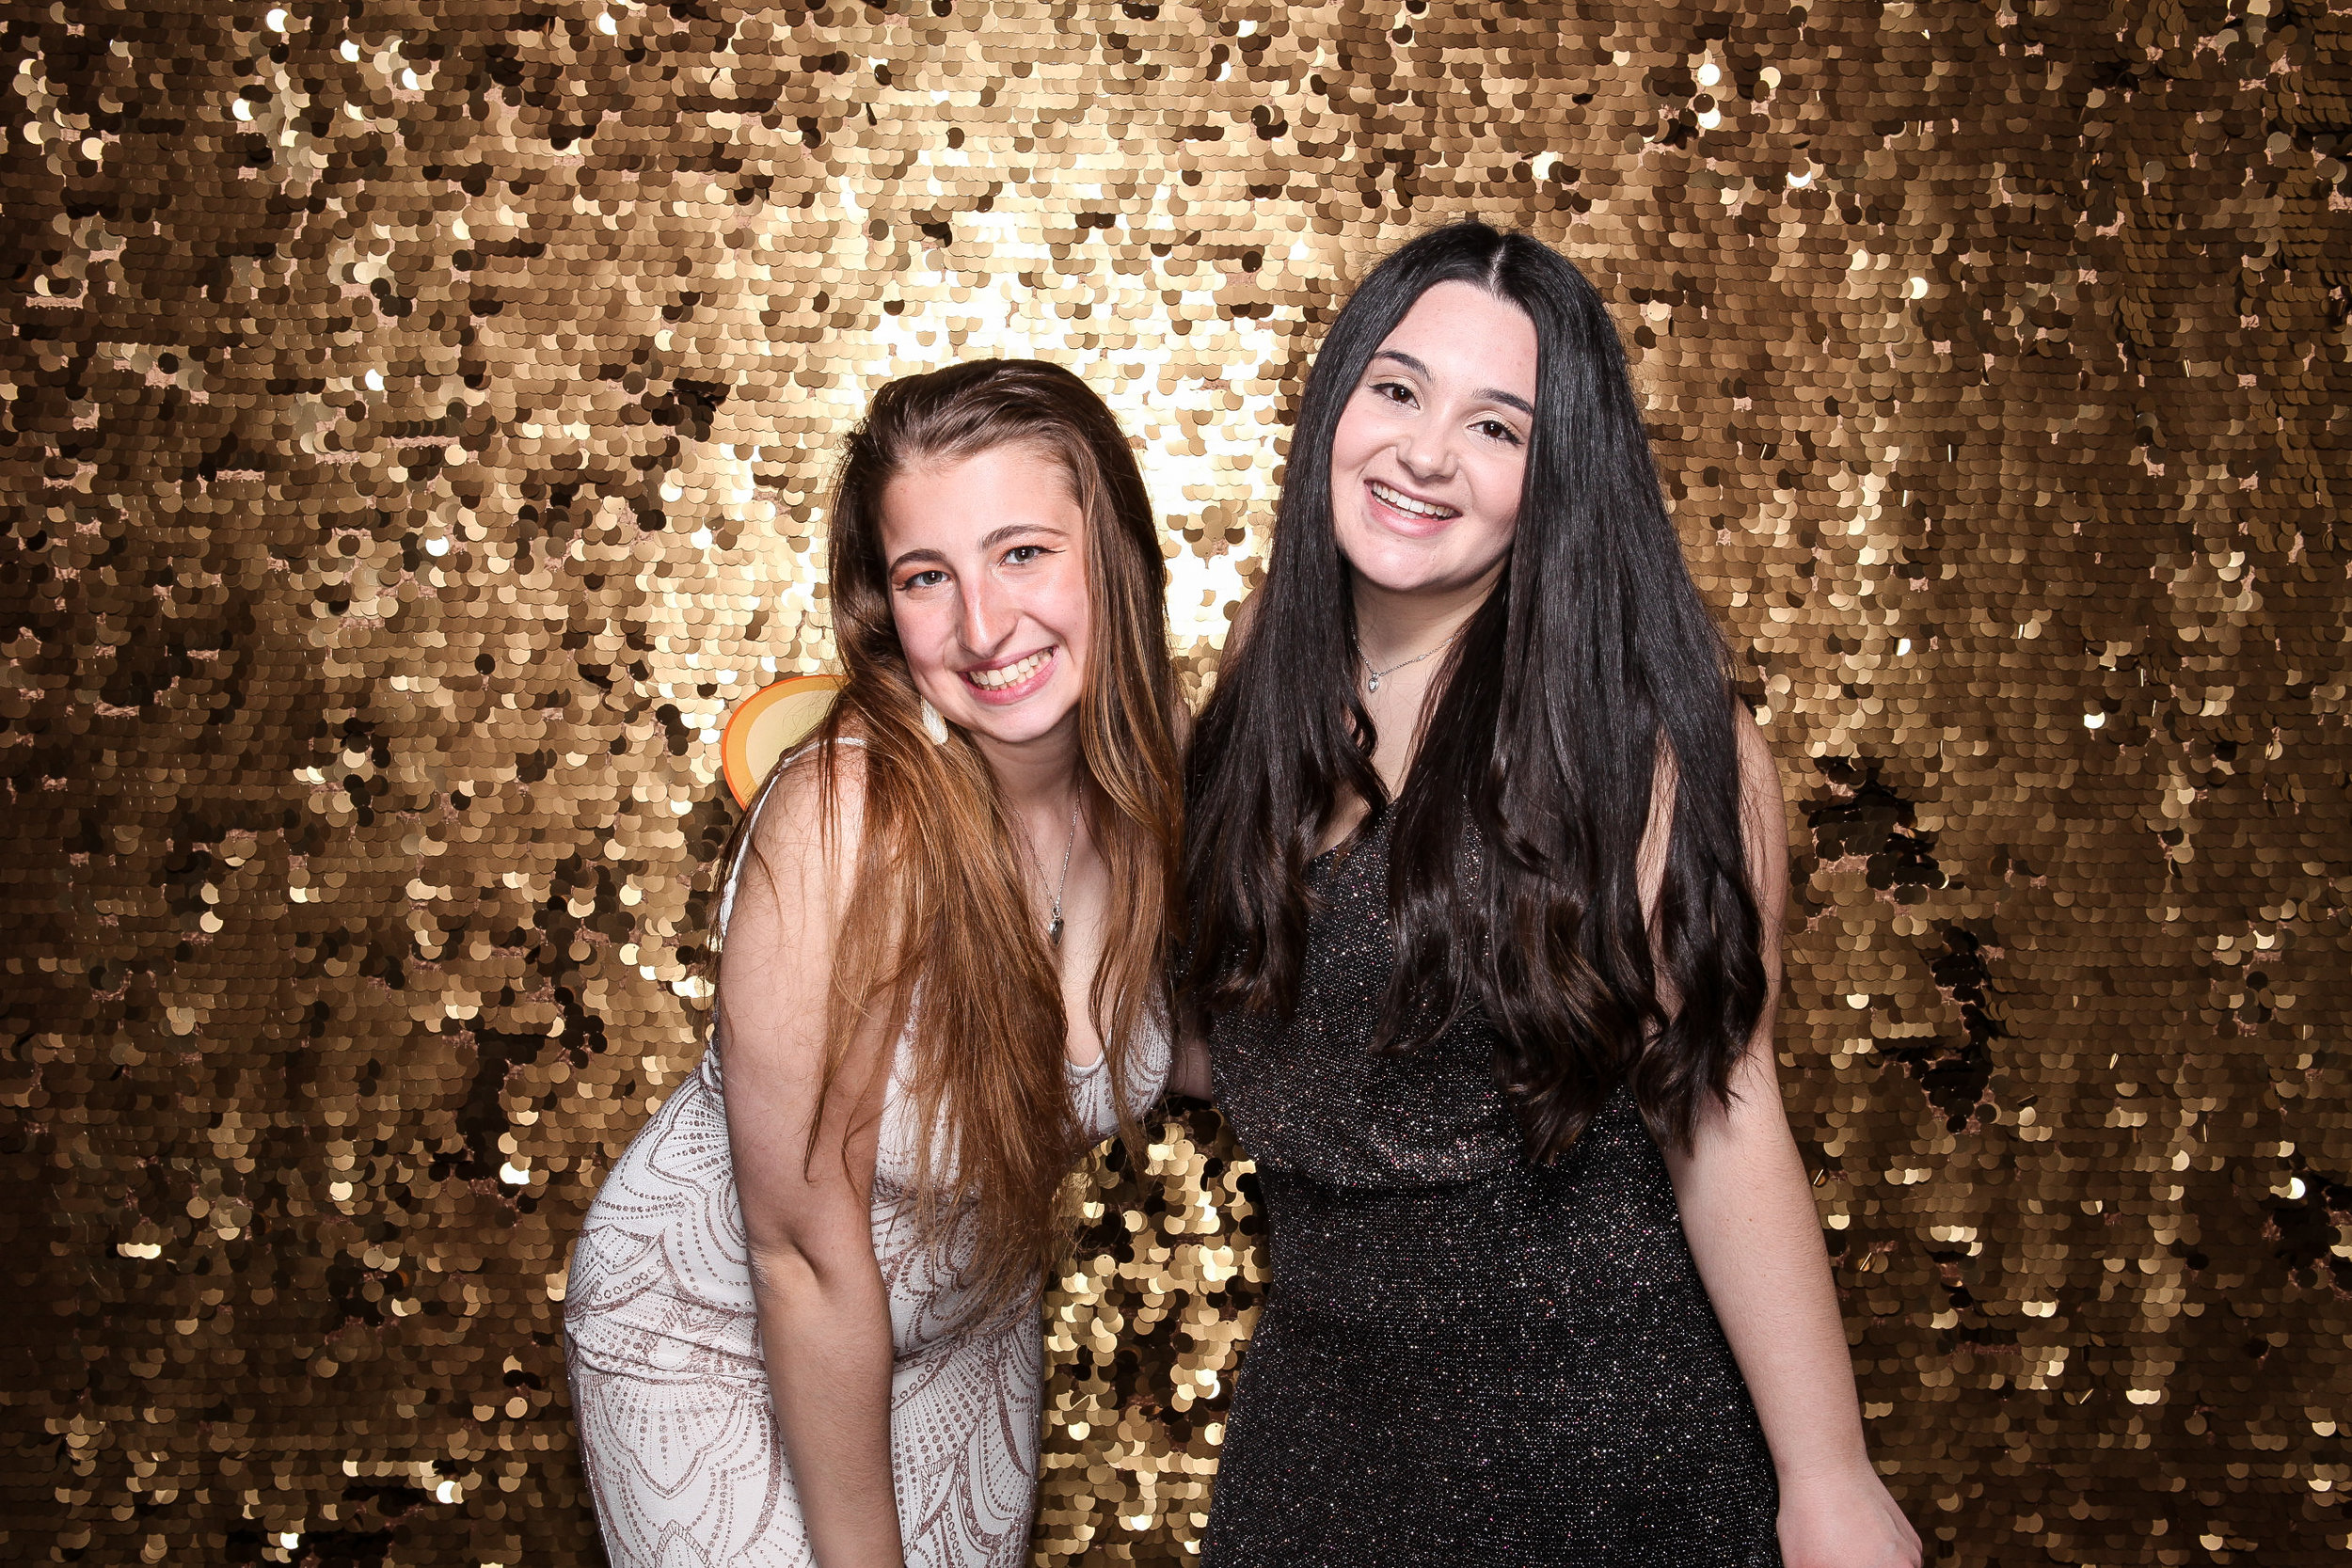 20190503_Adelphi_Senior_Formal-288.jpg